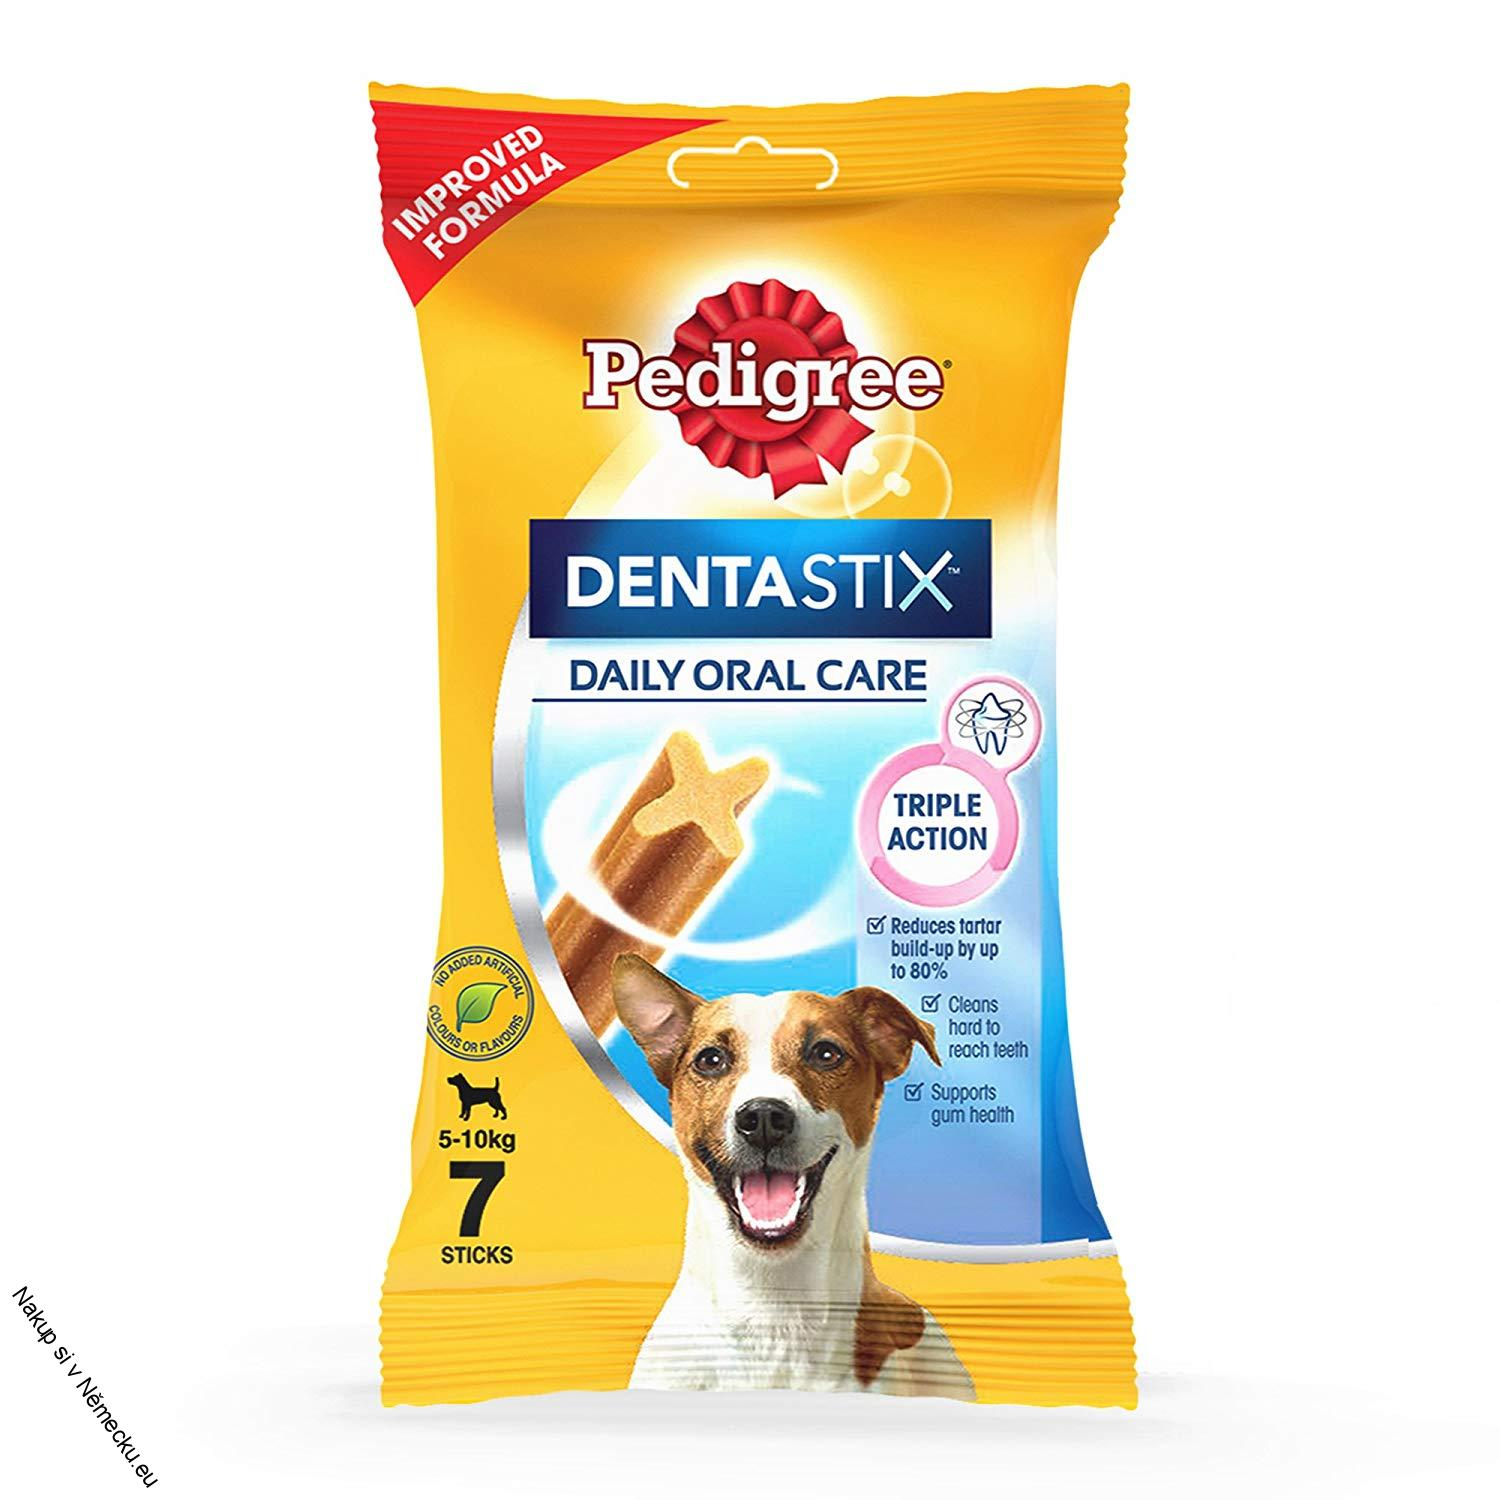 Pedigree Dentastix, Oral Care 110g